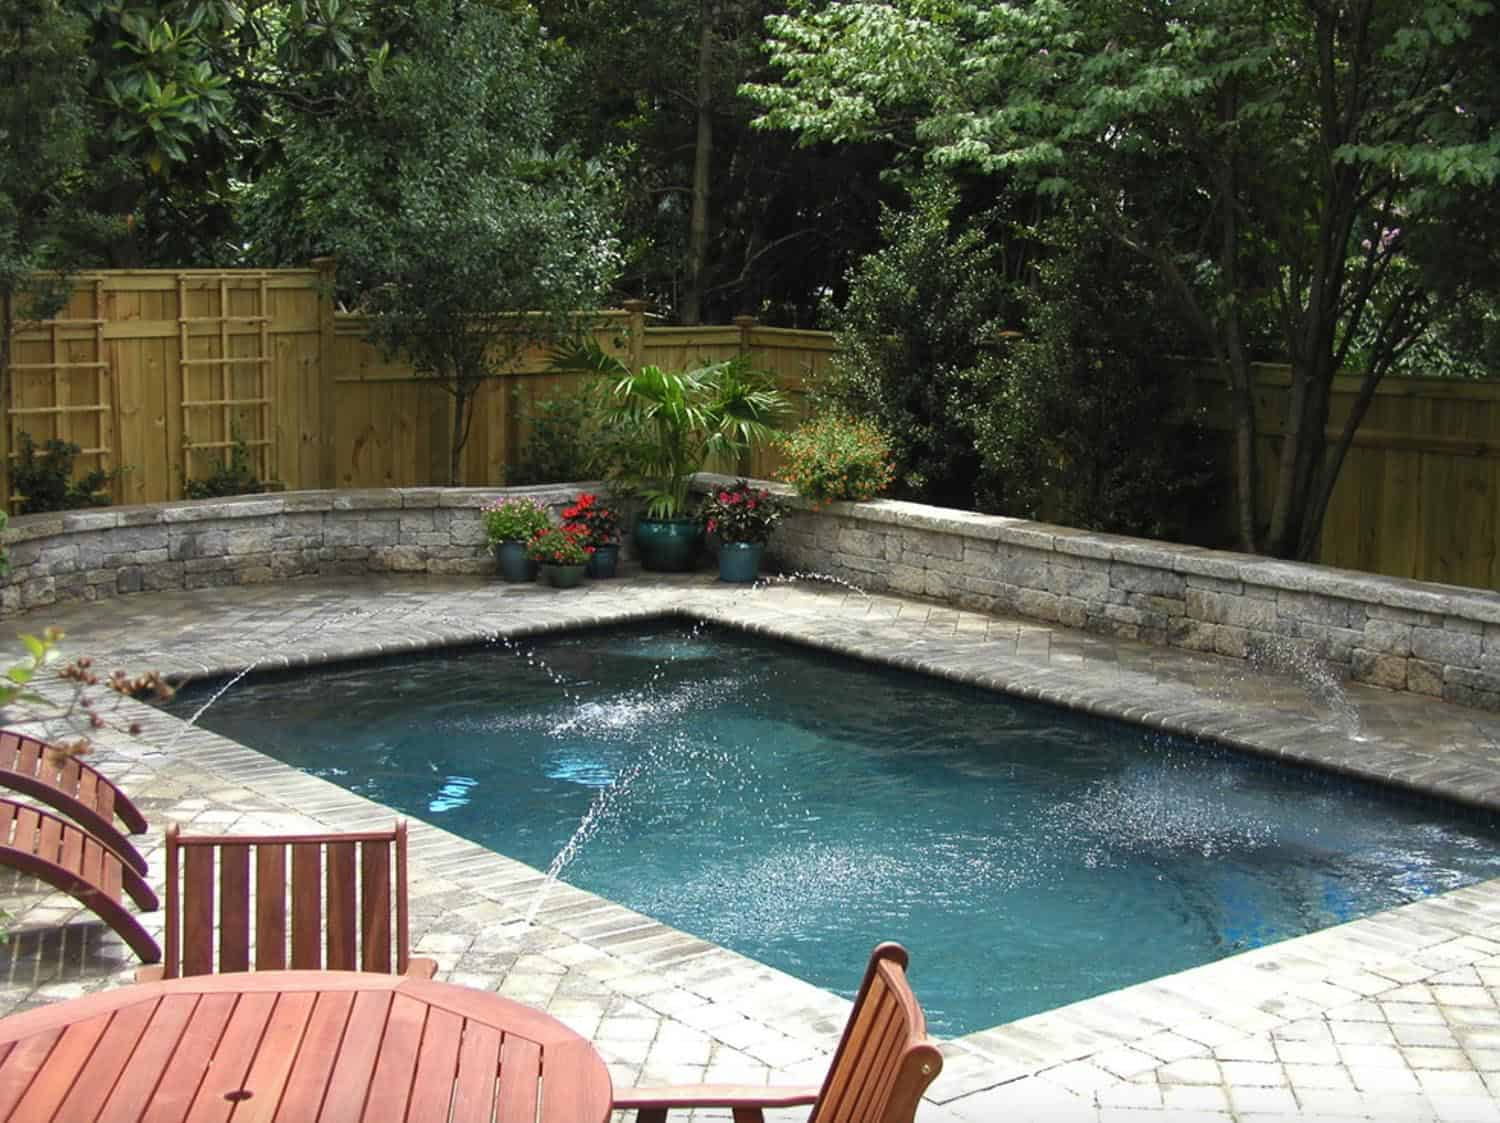 18 Extraordinary Small Pool Design Ideas For A Backyard Oasis